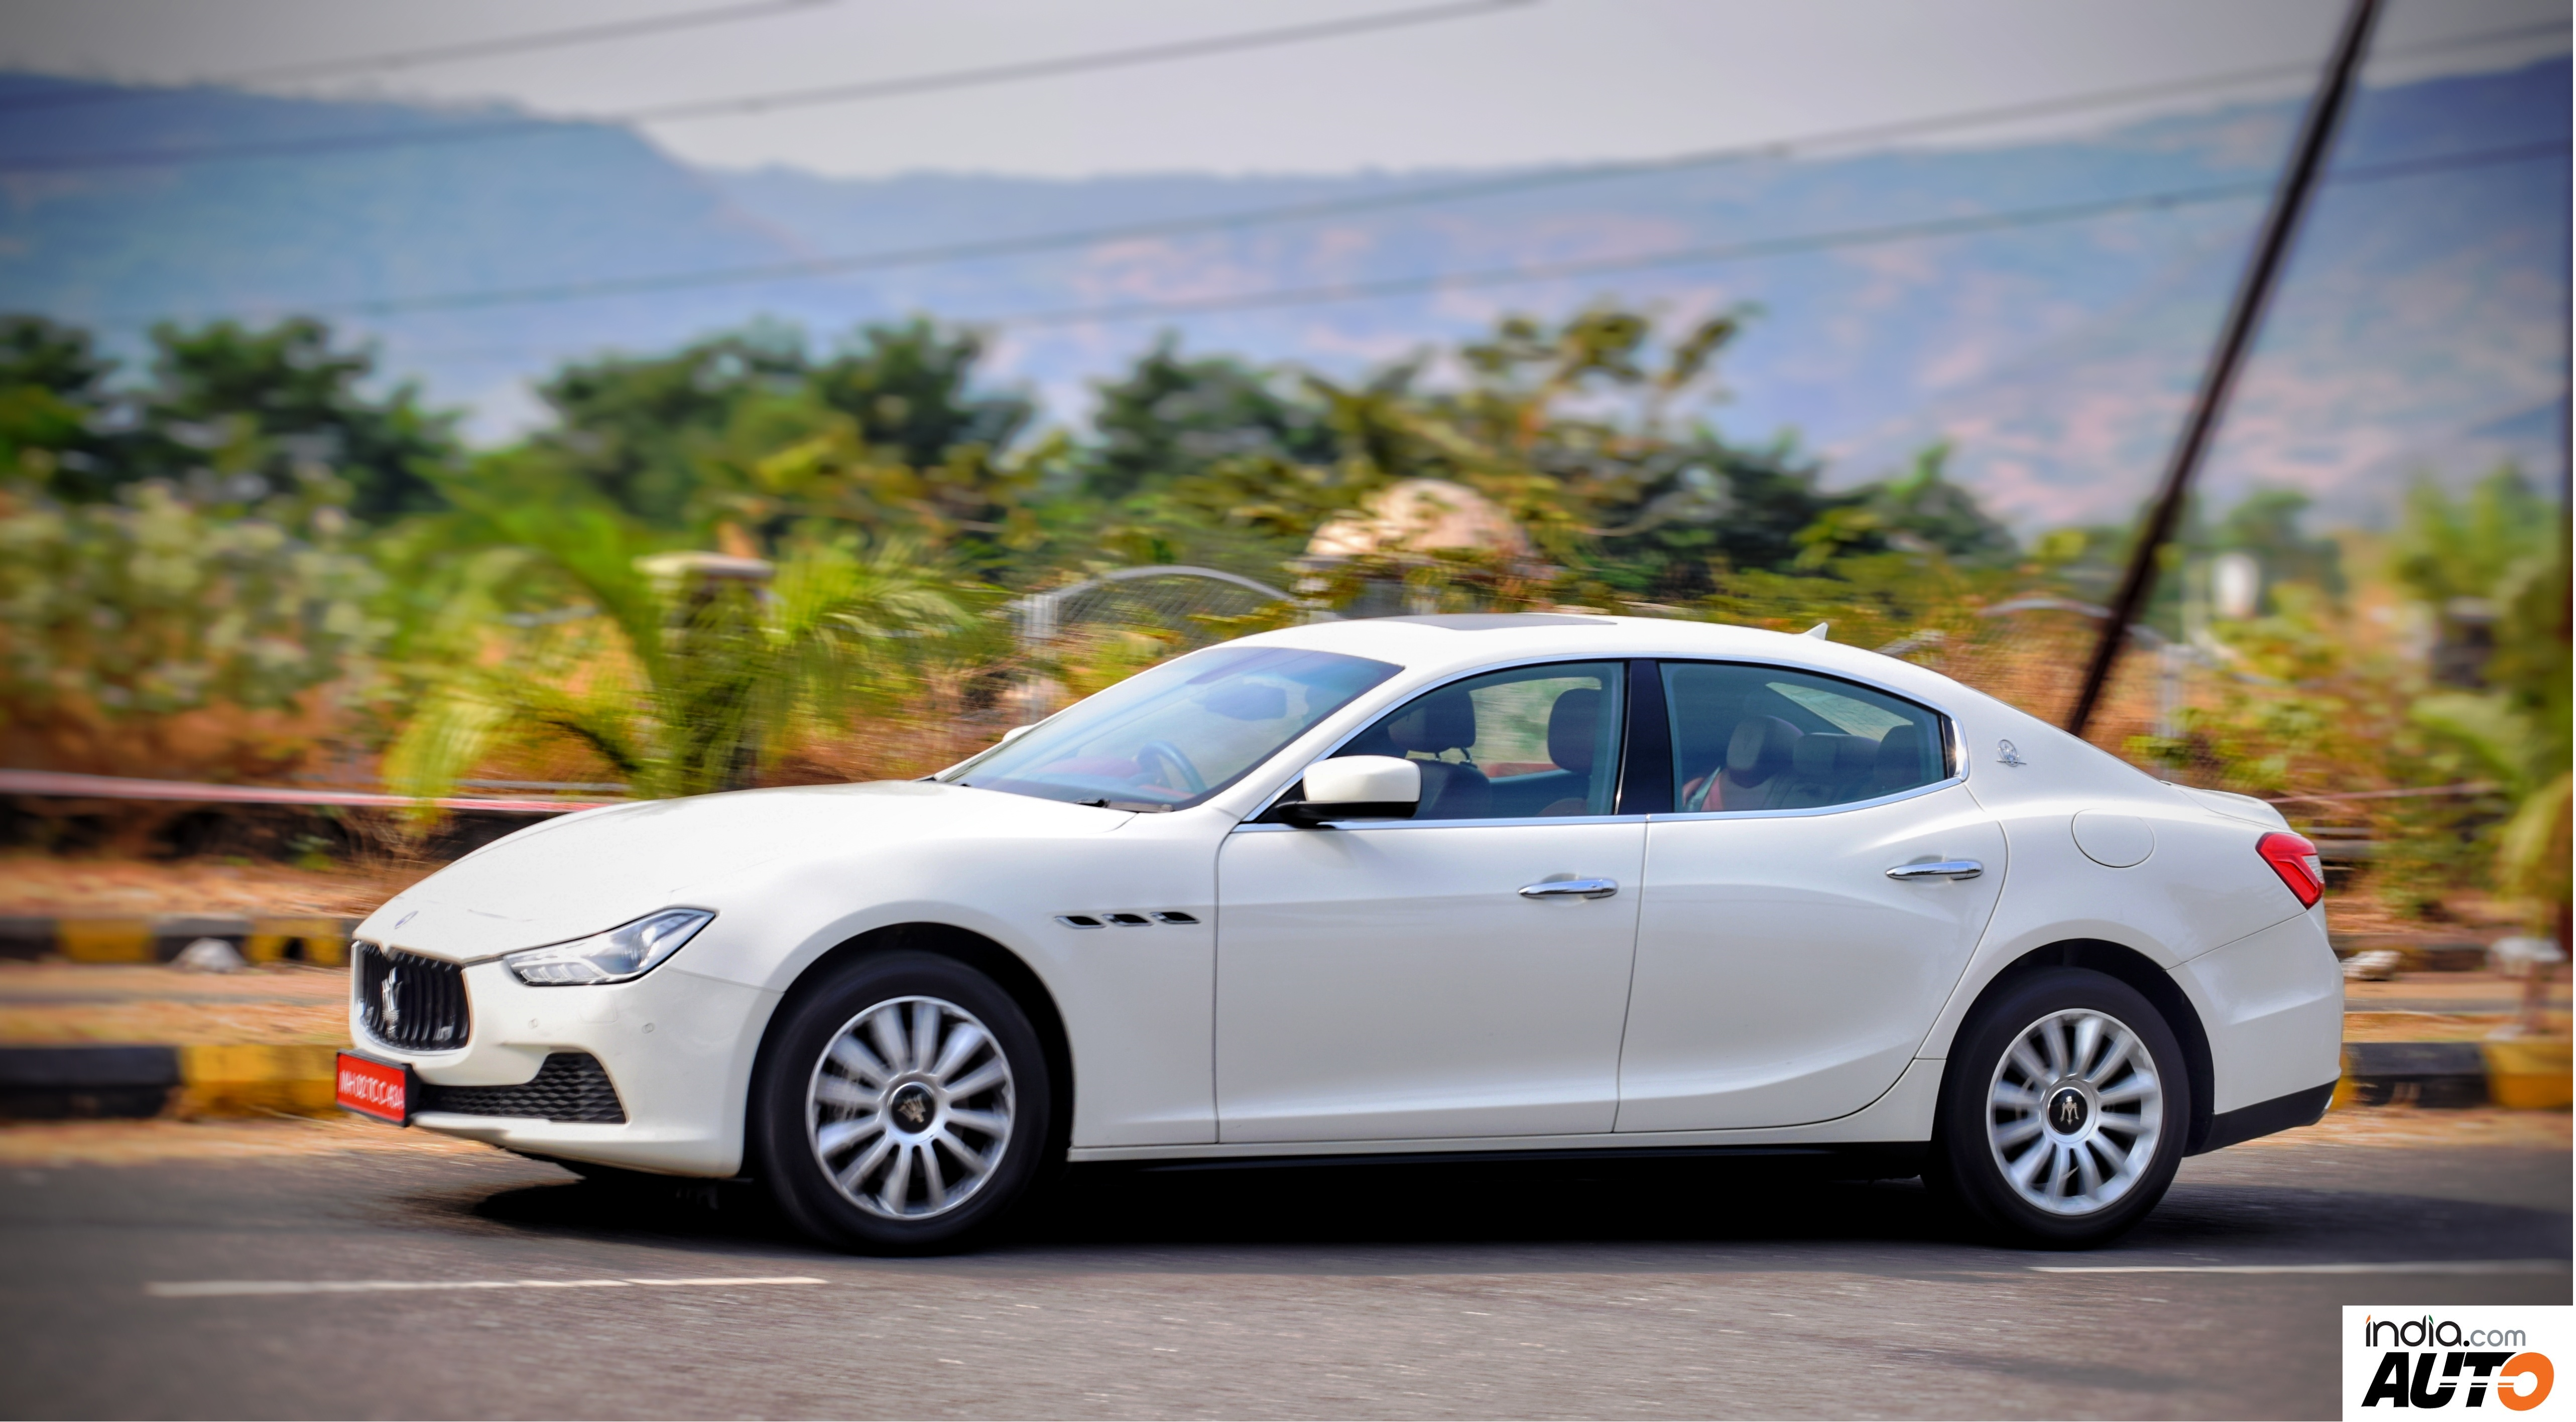 Maserati Ghibli in Action - Side Profile